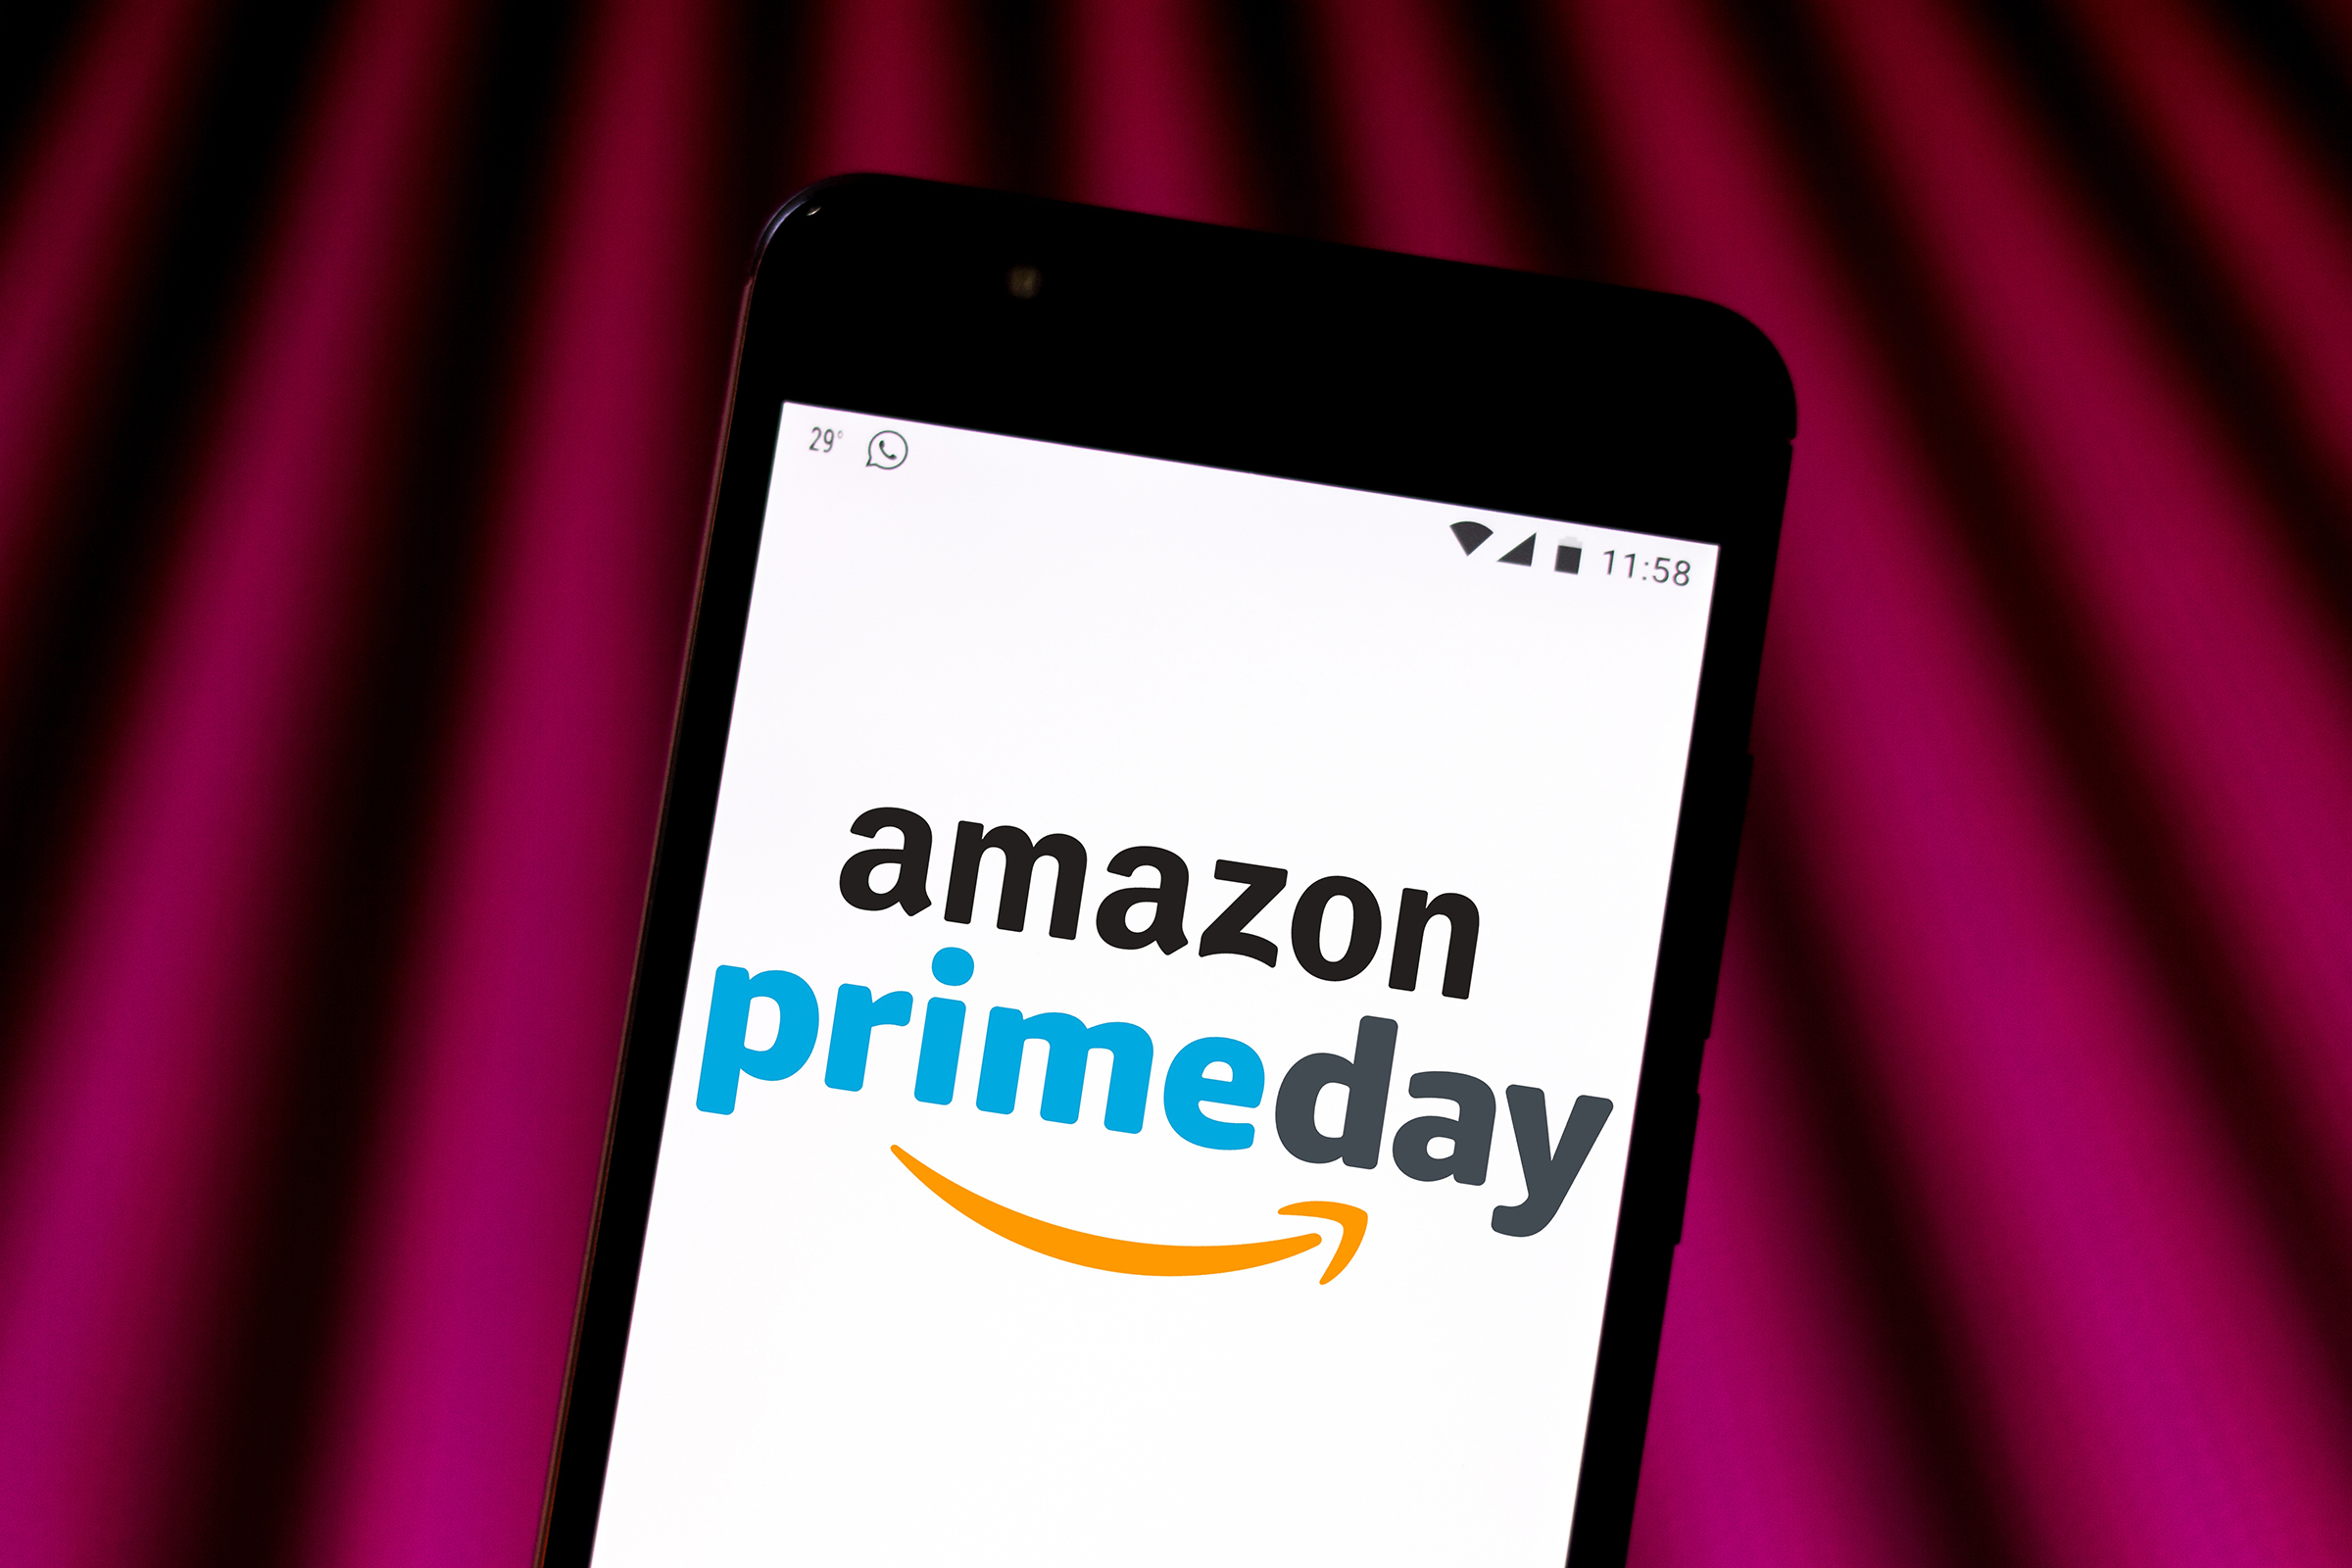 Amazon Prime Day 2019: Best Deals on TVs, Tablets, Apple Watch